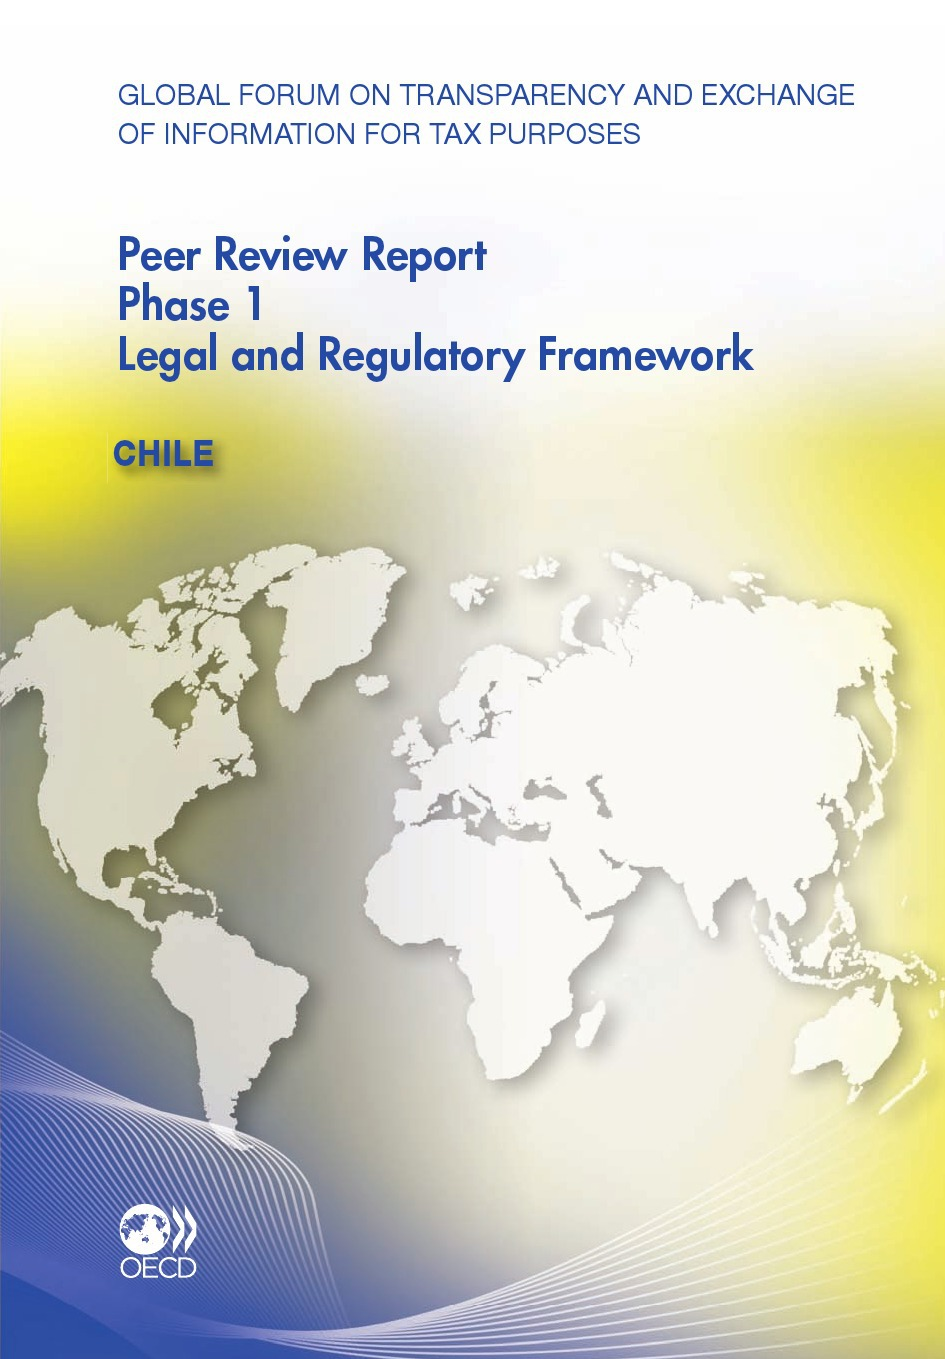 Peer review report phase 1 ; legal and regulatory framework : Chile